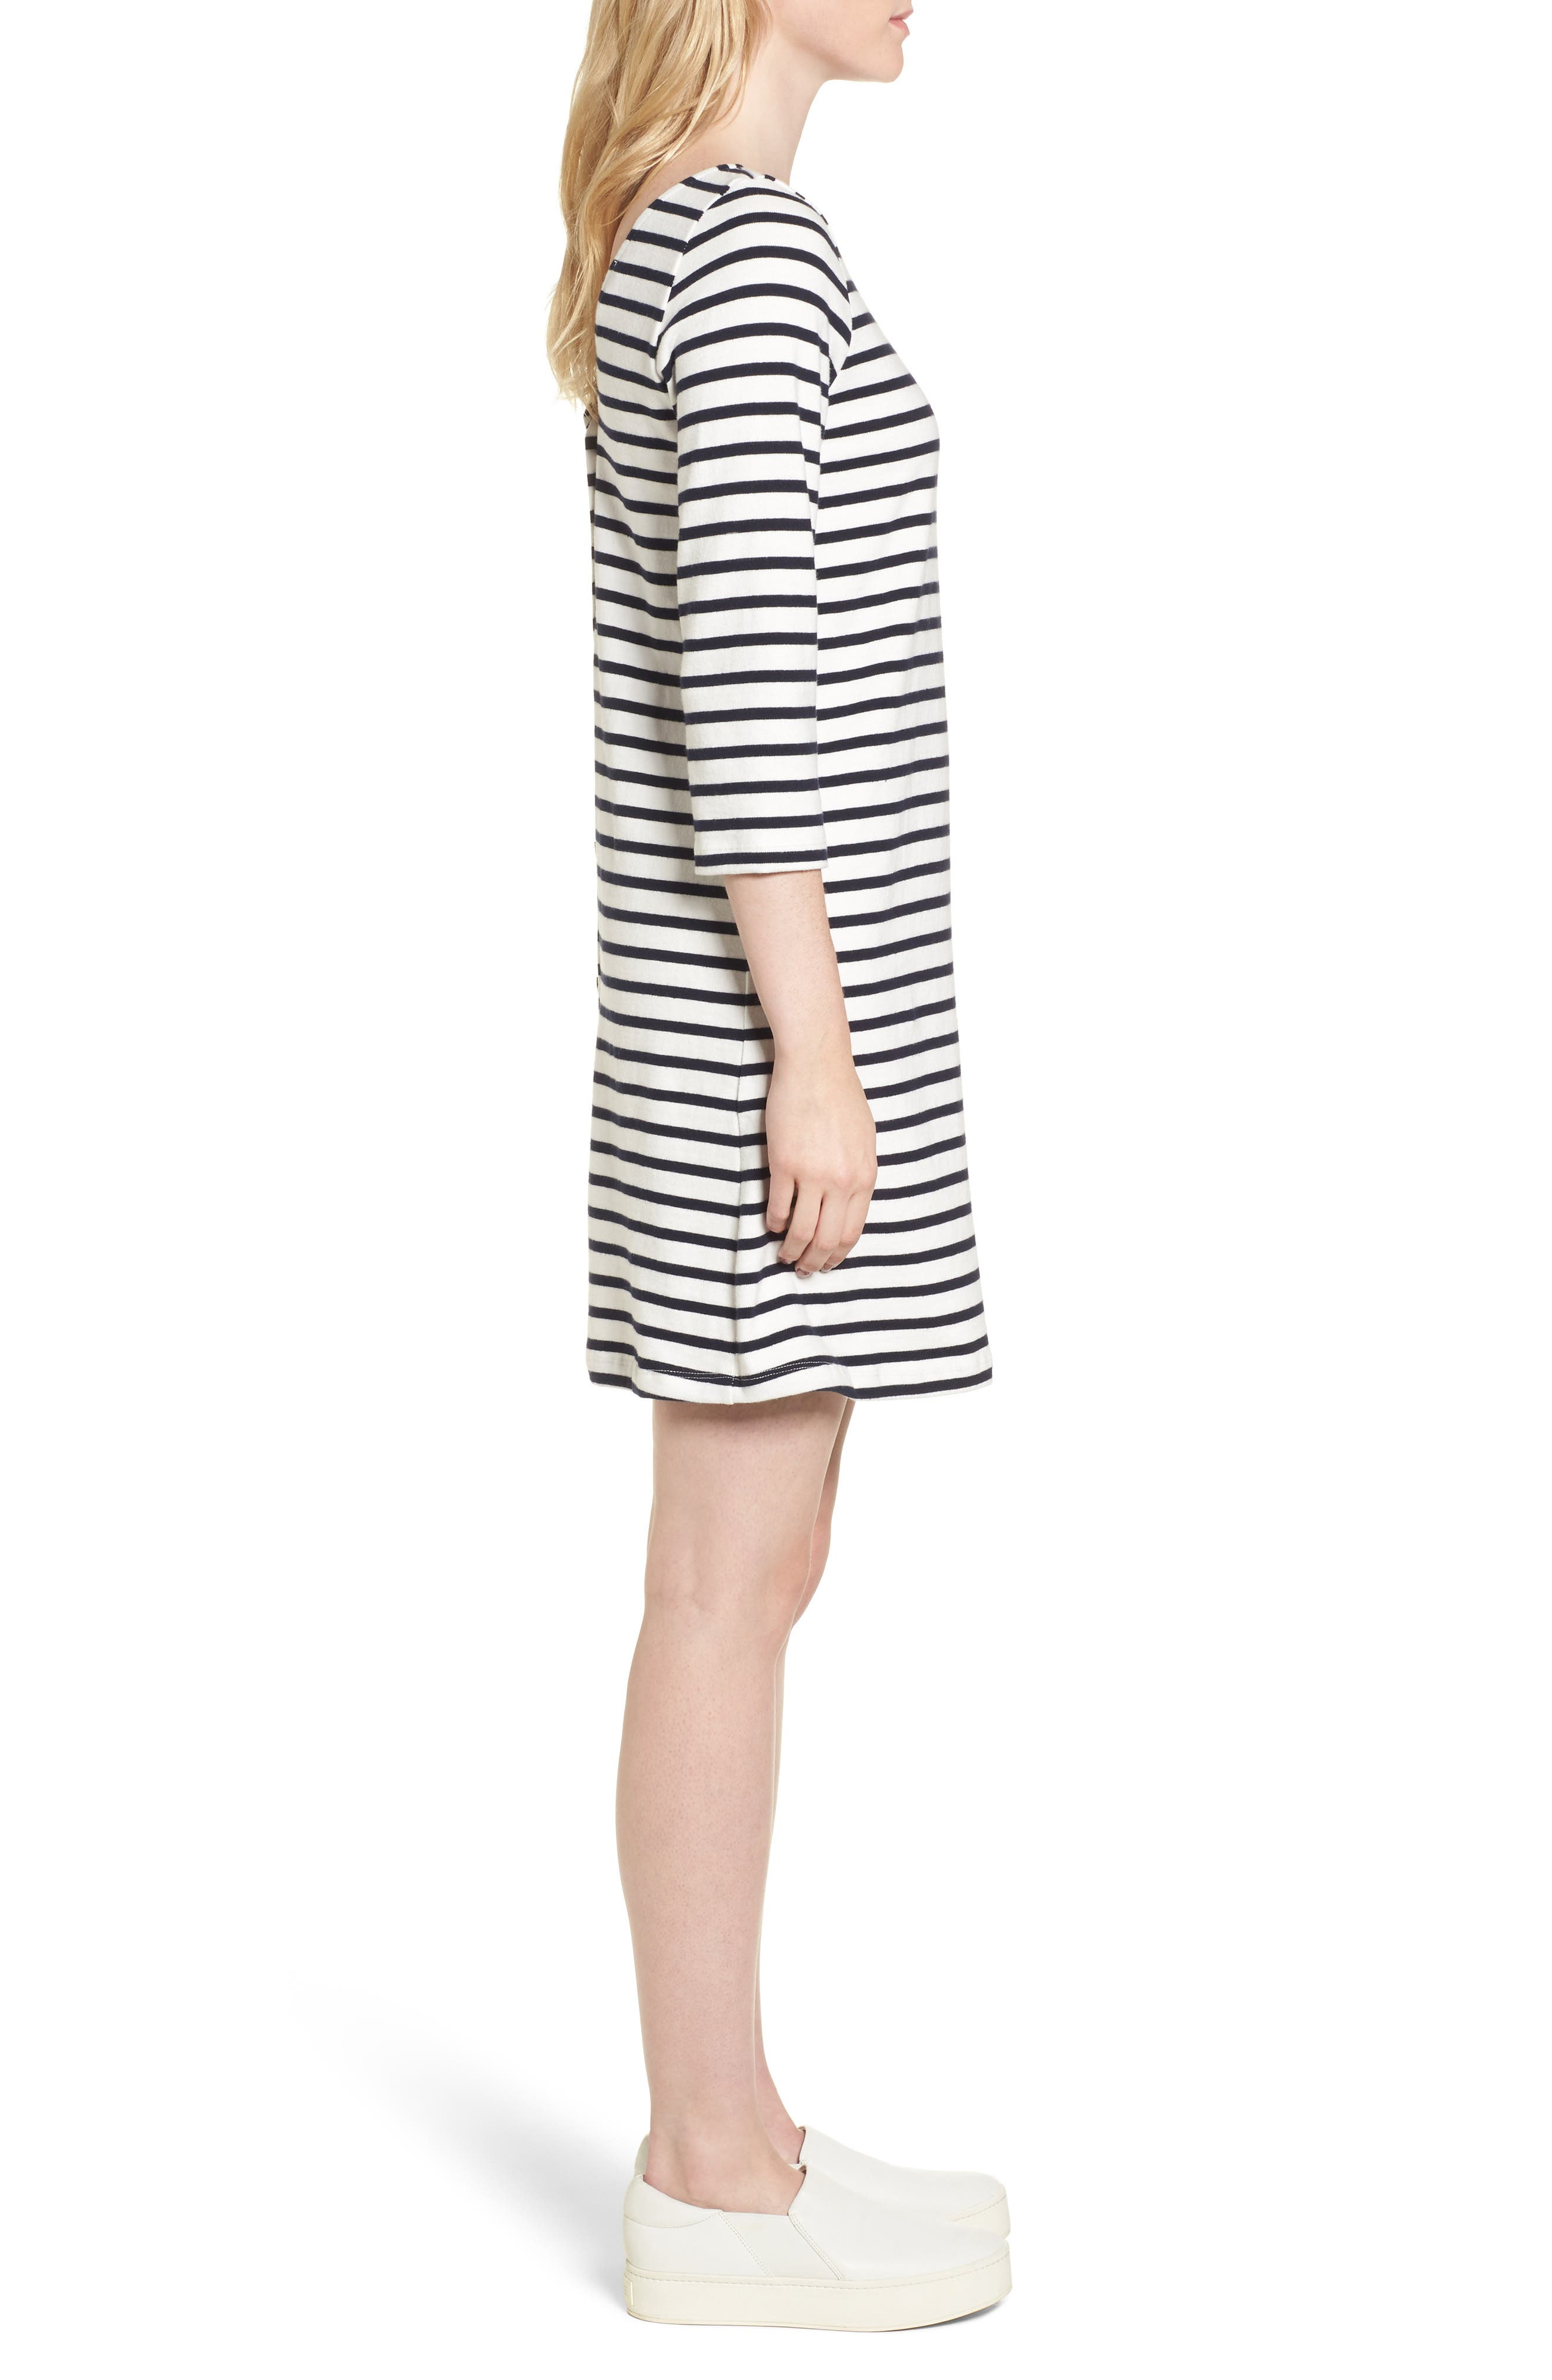 Trista Organic Cotton Dress,                             Alternate thumbnail 4, color,                             Ivory/ Navy